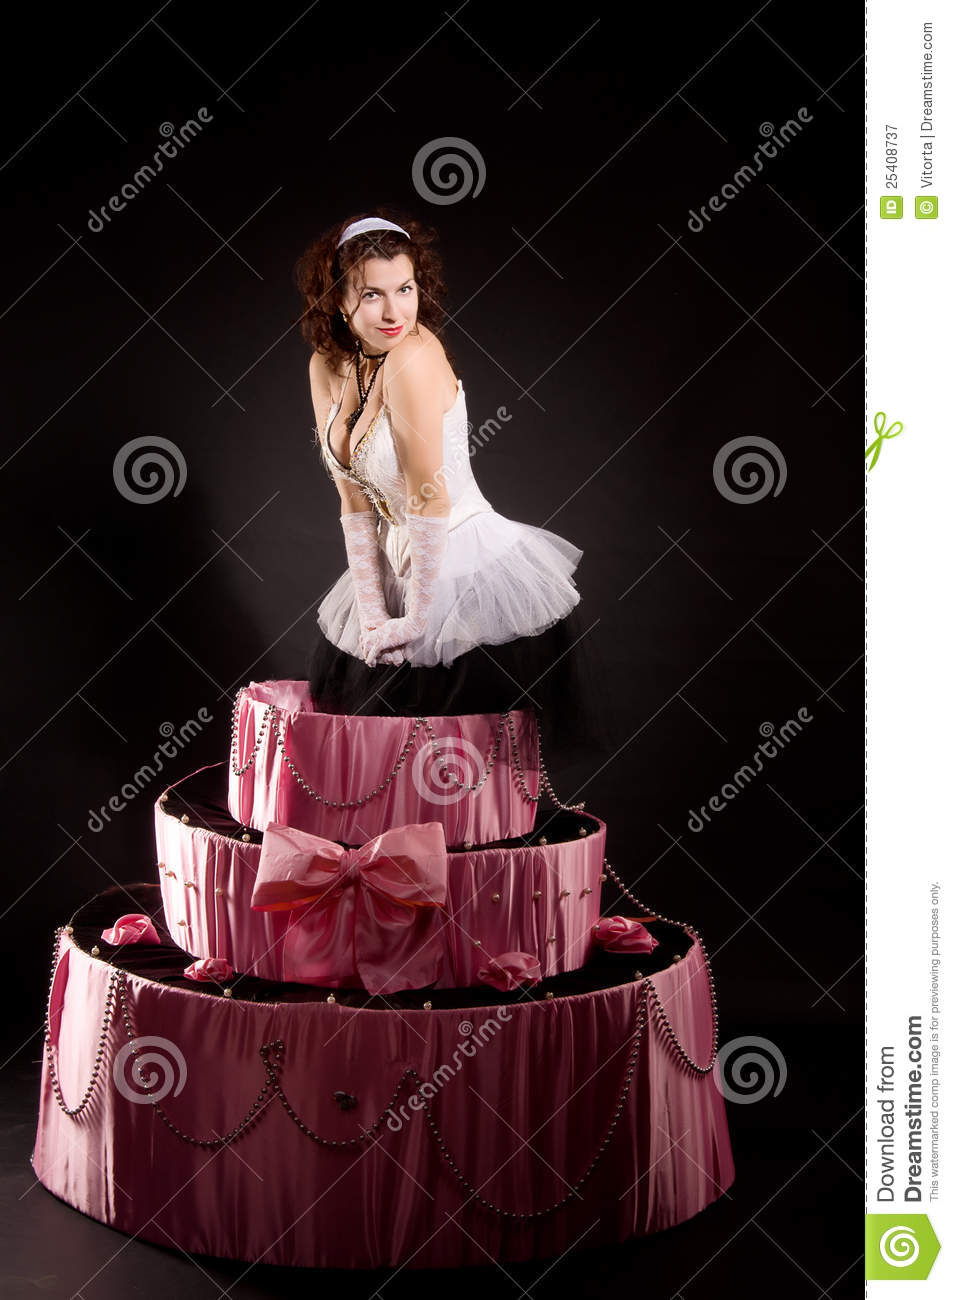 Remarkable Pin Up Girl Jumping Toy Cake Stock Image Image Of Skirt Jumping Funny Birthday Cards Online Sheoxdamsfinfo